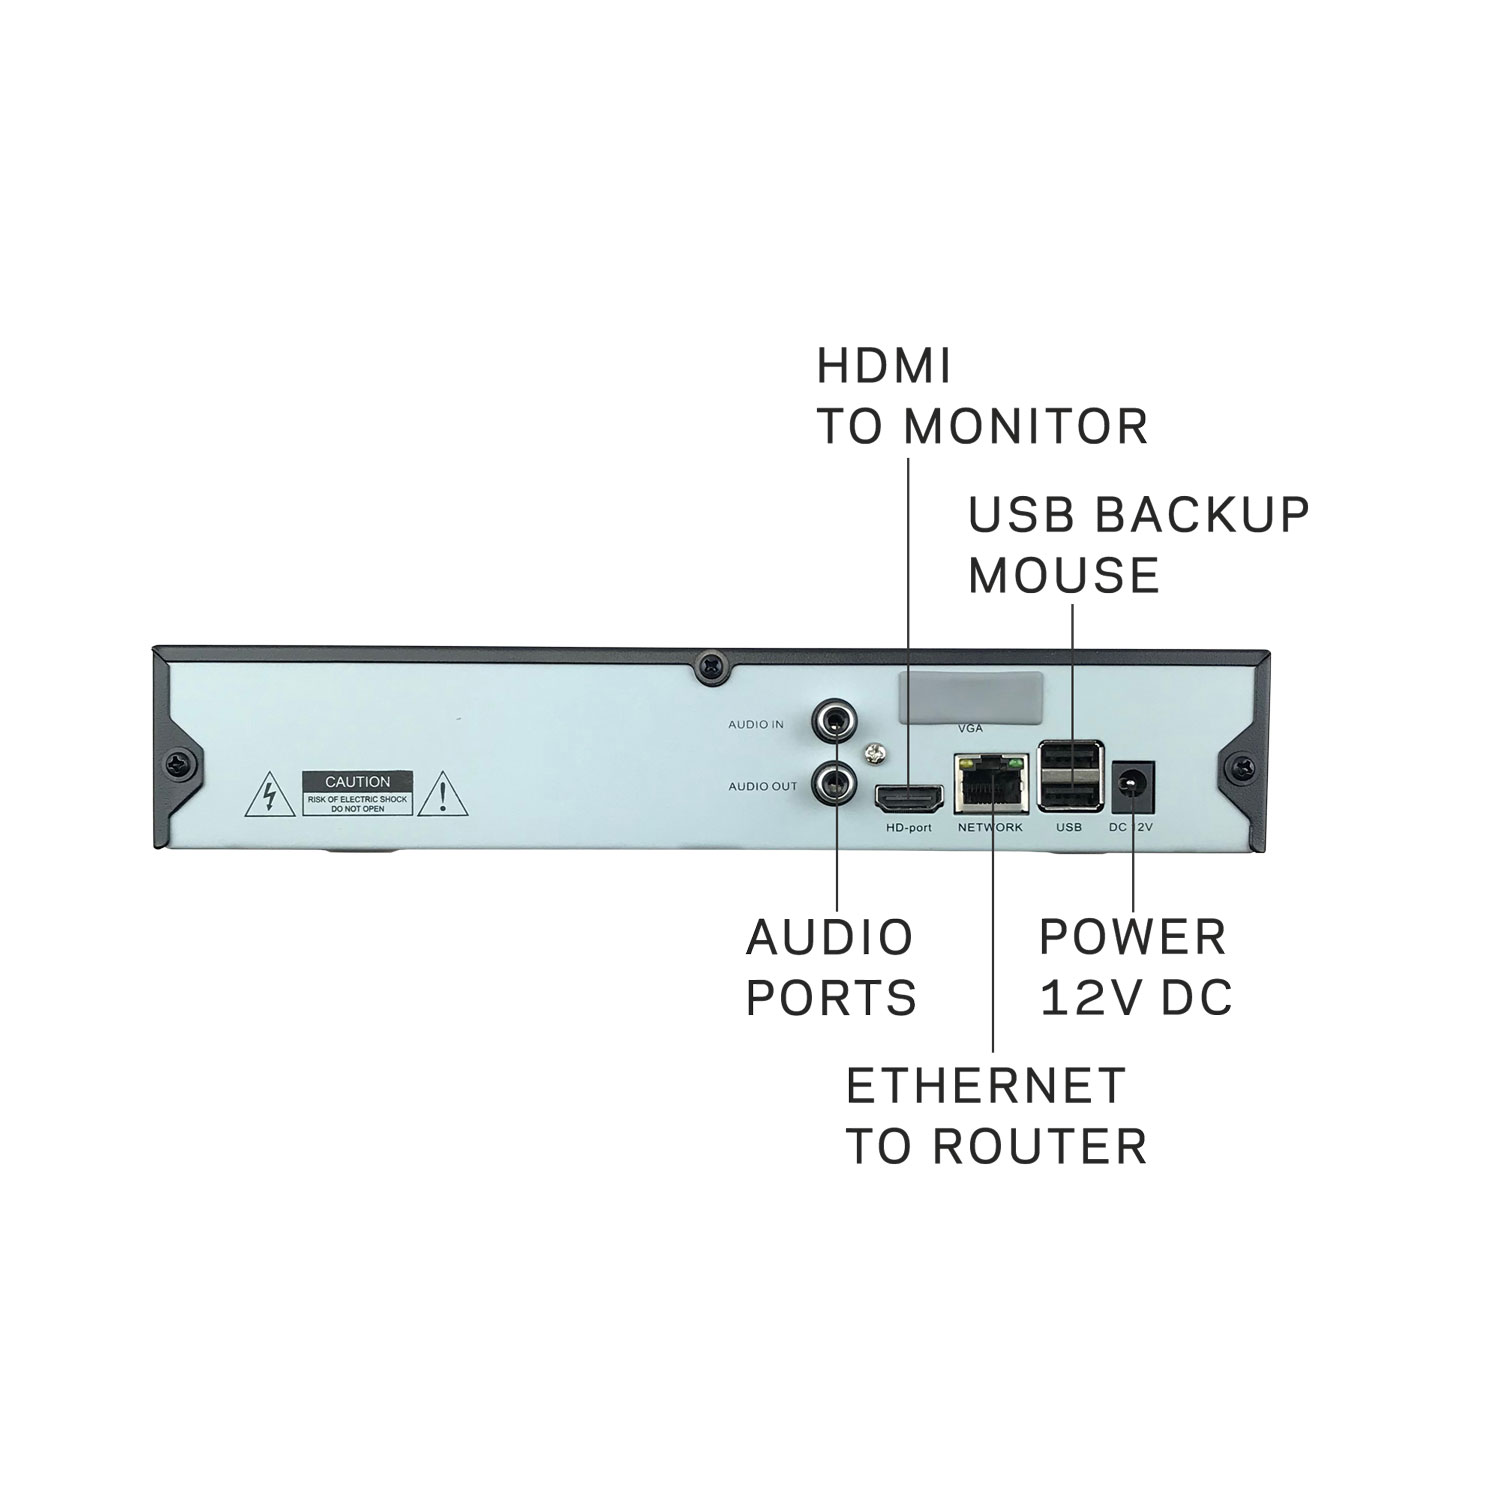 Microseven 4K NVR 8MP 8CH Compatible with Alexa, Security Network Video Recorder (1080p/3MP/4MP/5MP/6MP/8MP) Supports up to 8 x 8-Megapixel IP Cameras, Max. 8TB HDD 1 x SATA (Not Included)